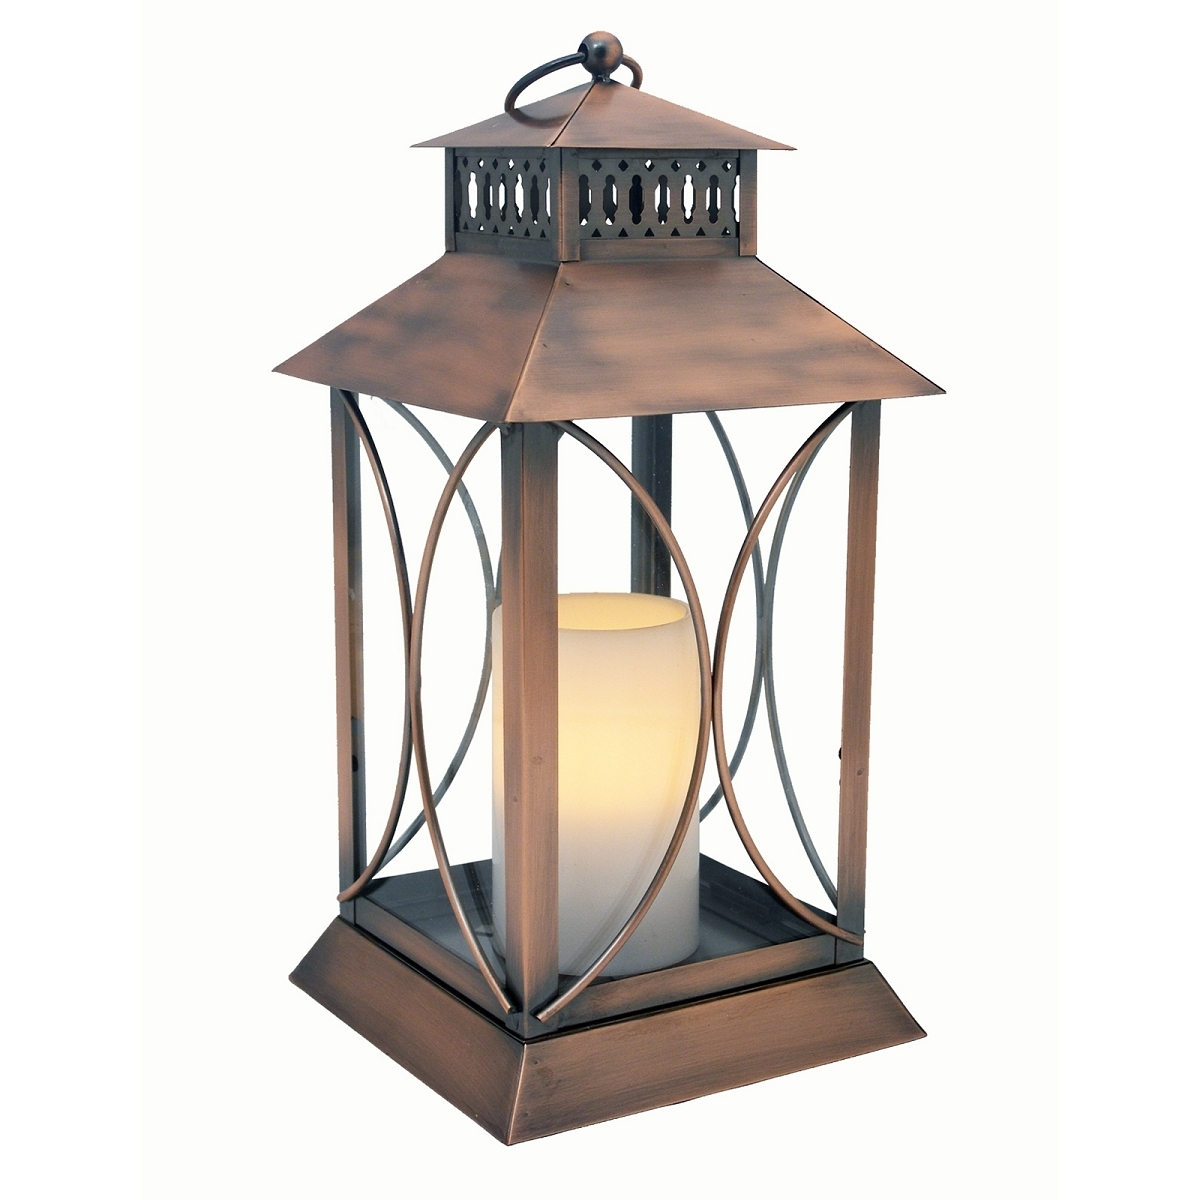 Outdoor Timer Lanterns Inside Well Liked Neuporte Flameless Candle Lantern With Timer Indoor – Outdoor (Gallery 4 of 20)